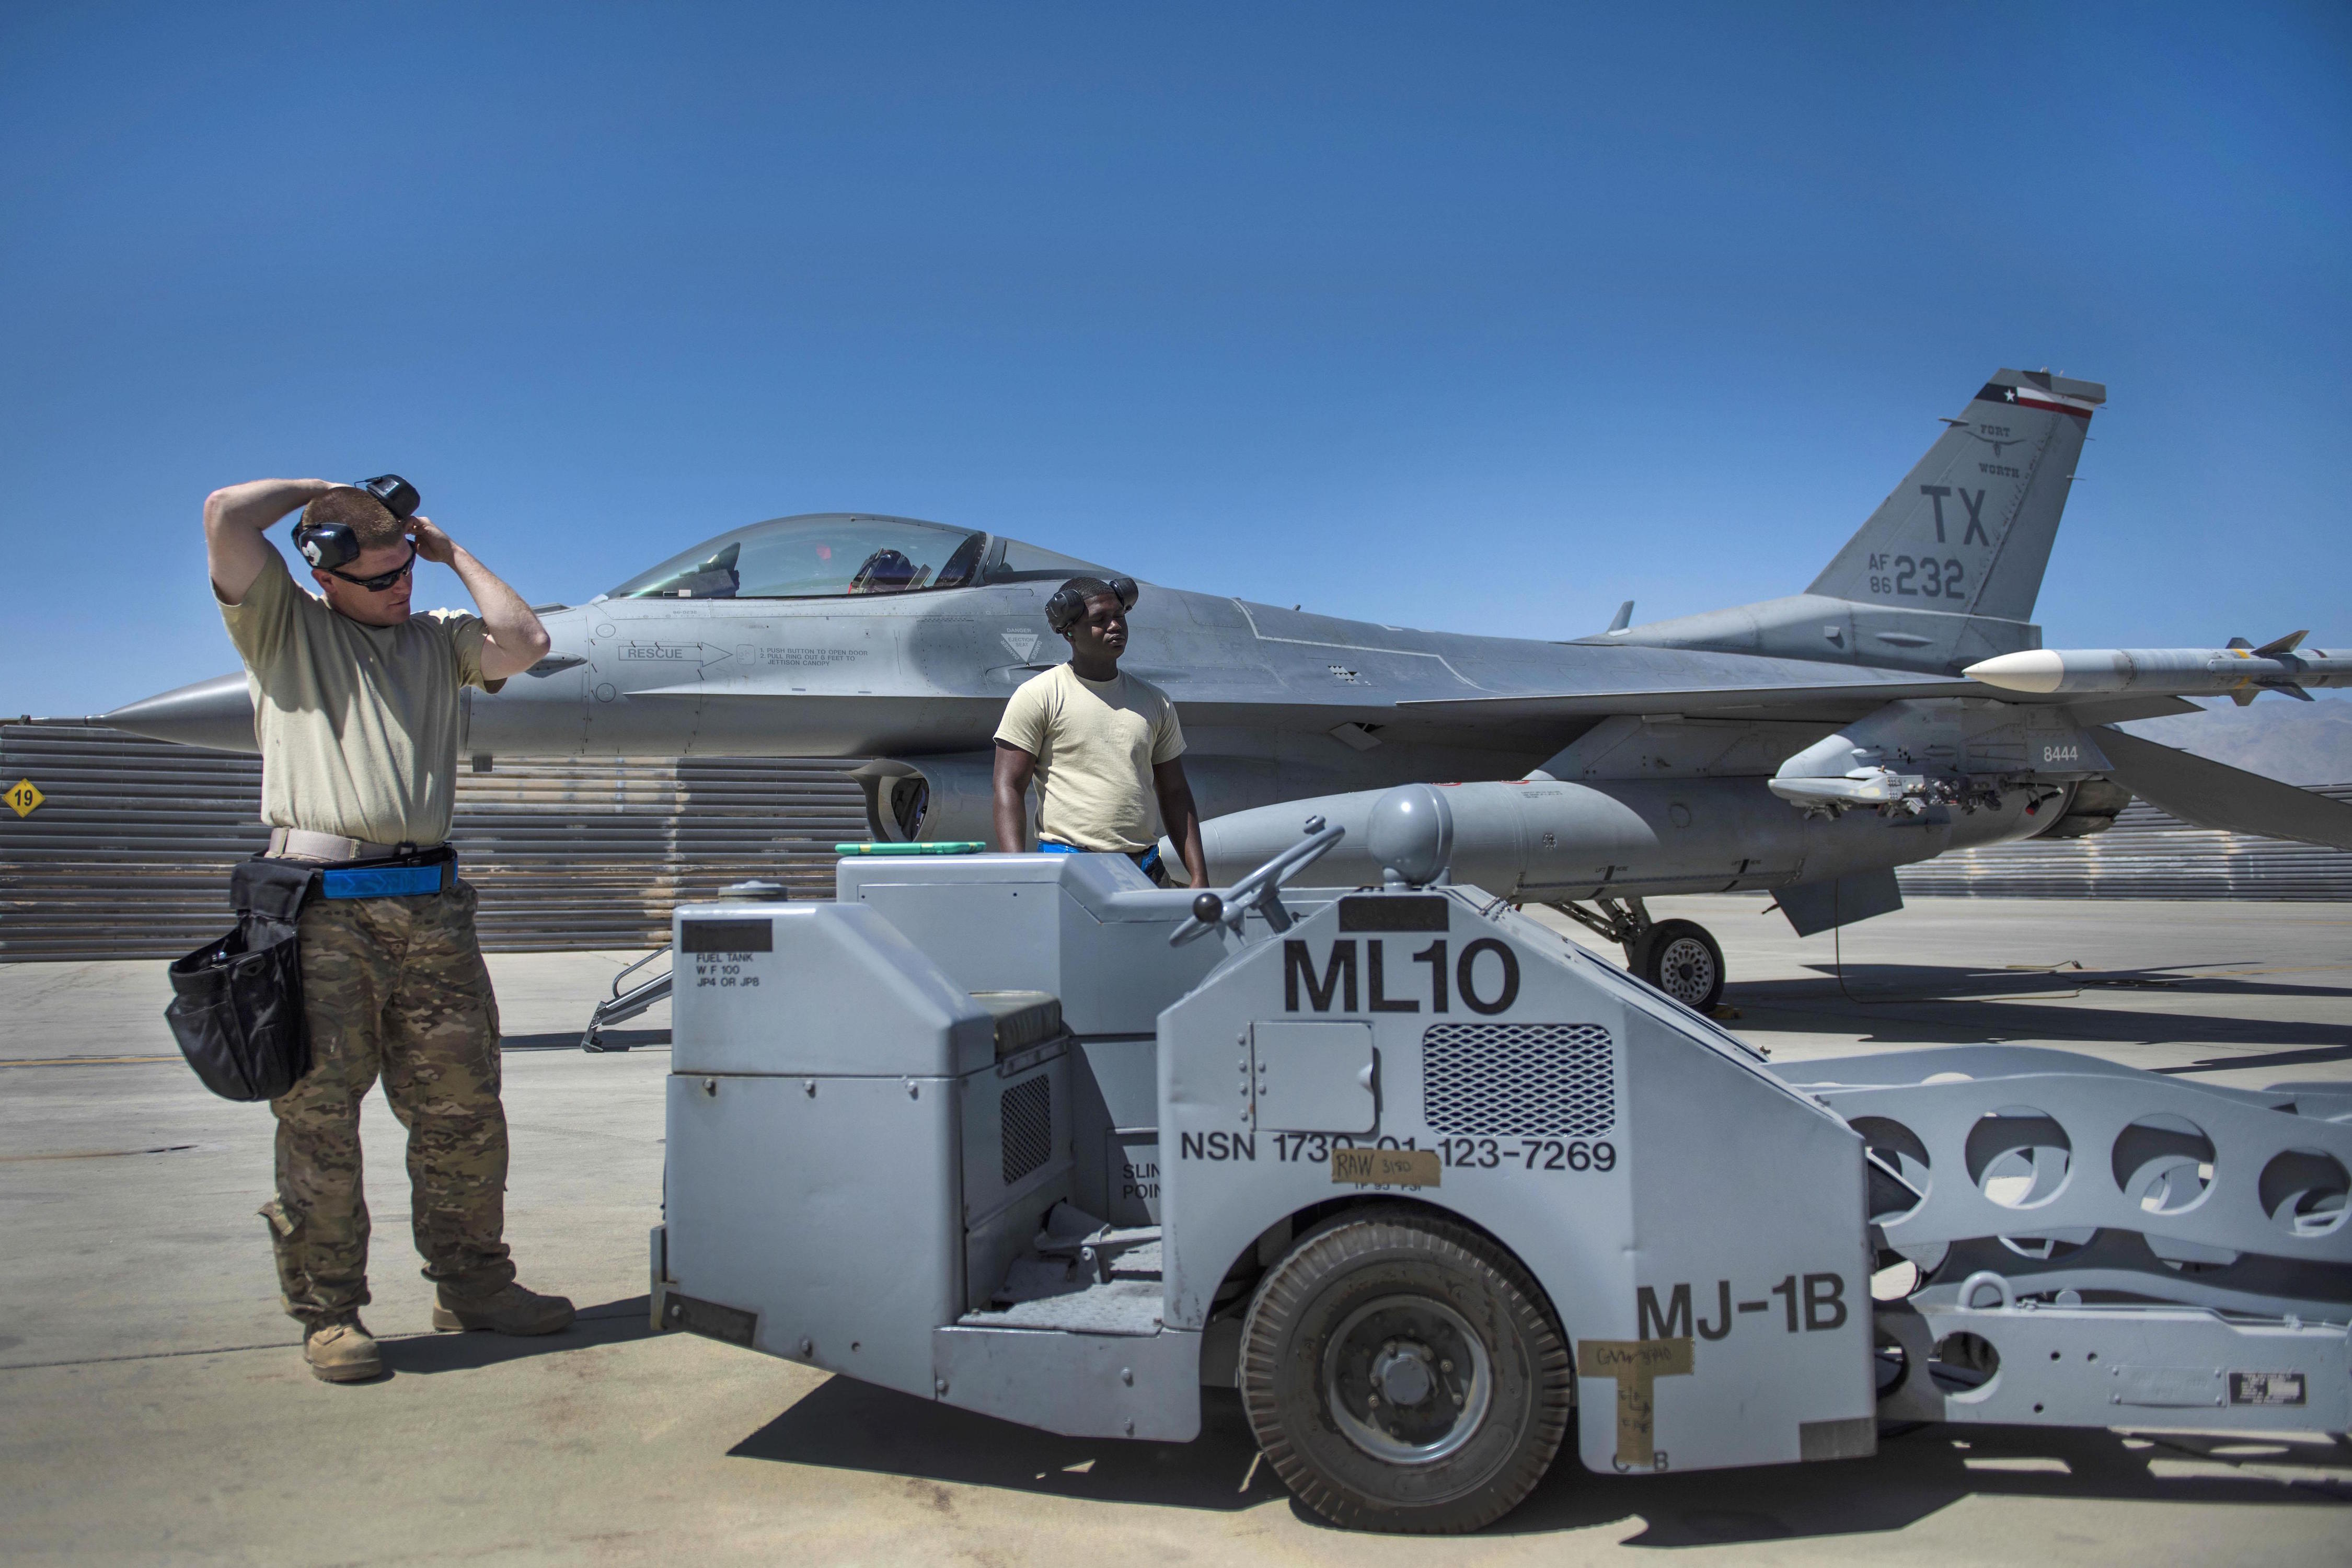 Air Force Tech. Sgt. Joseph McCullough, left, and Senior Airman Clarence Williams prepare to load two guided bombs on an F-16C Fighting Falcon aircraft at Bagram Airfield, Afghanistan, June 7, 2016. McCullough and Williams are weapons maintainers assigned to the 455th Expeditionary Aircraft Maintenance Squadron. Air Force photo by Senior Airman Justyn M. Freeman